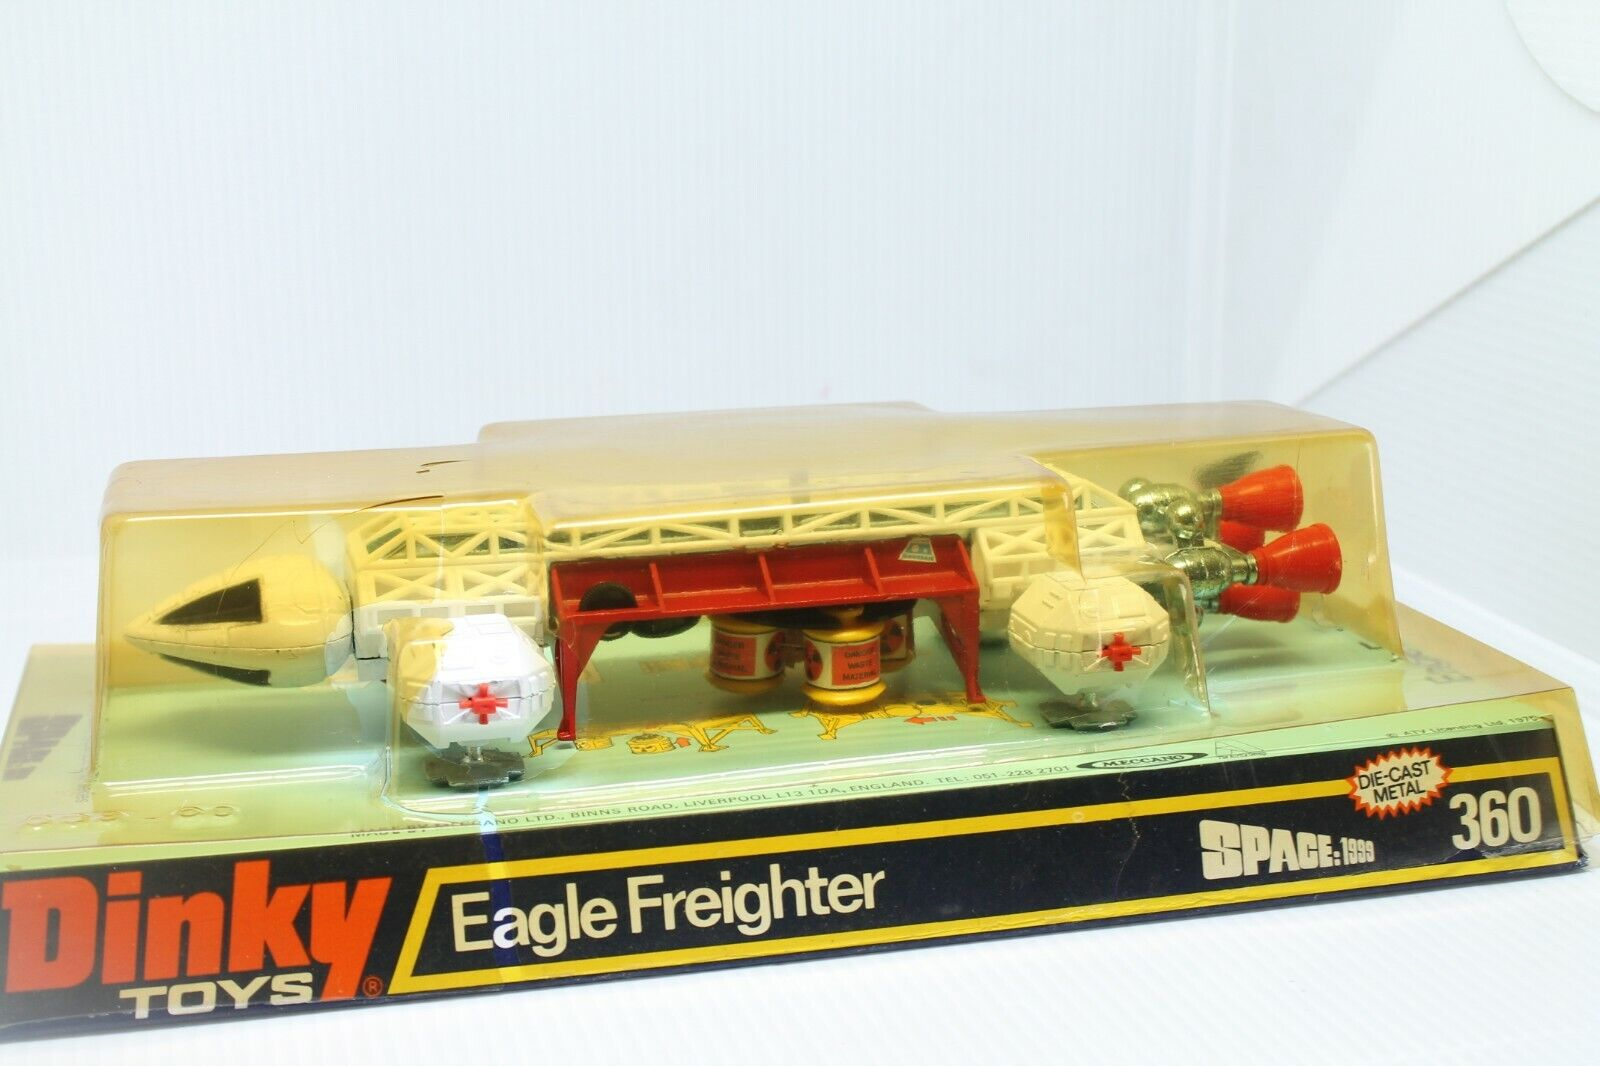 DINKY TOYS 360   EAGLE FREIGHTER SPACE 1999   OVP  ANDERSON  MINT  1976